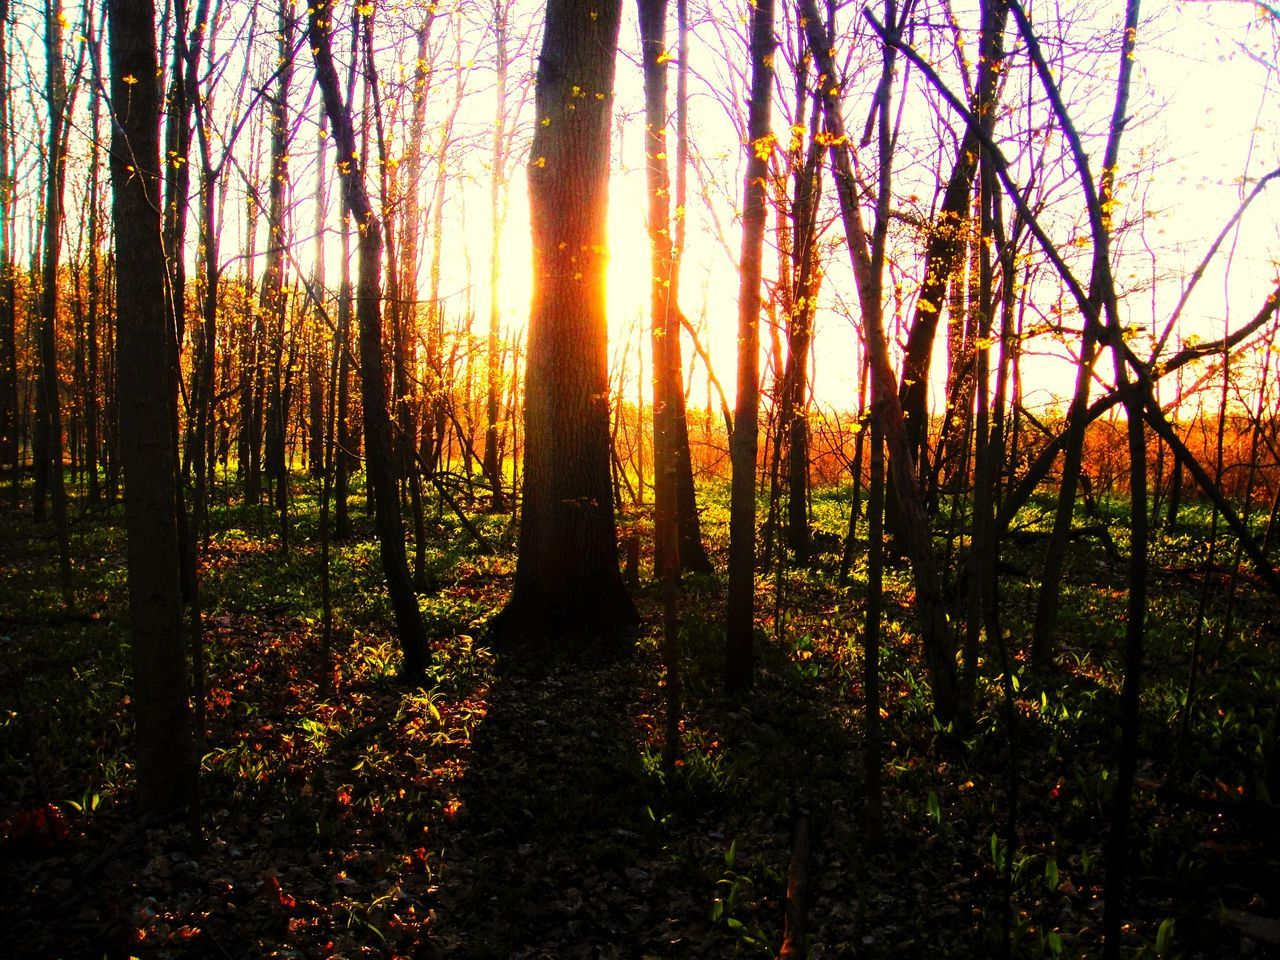 Trees in forest at sunset